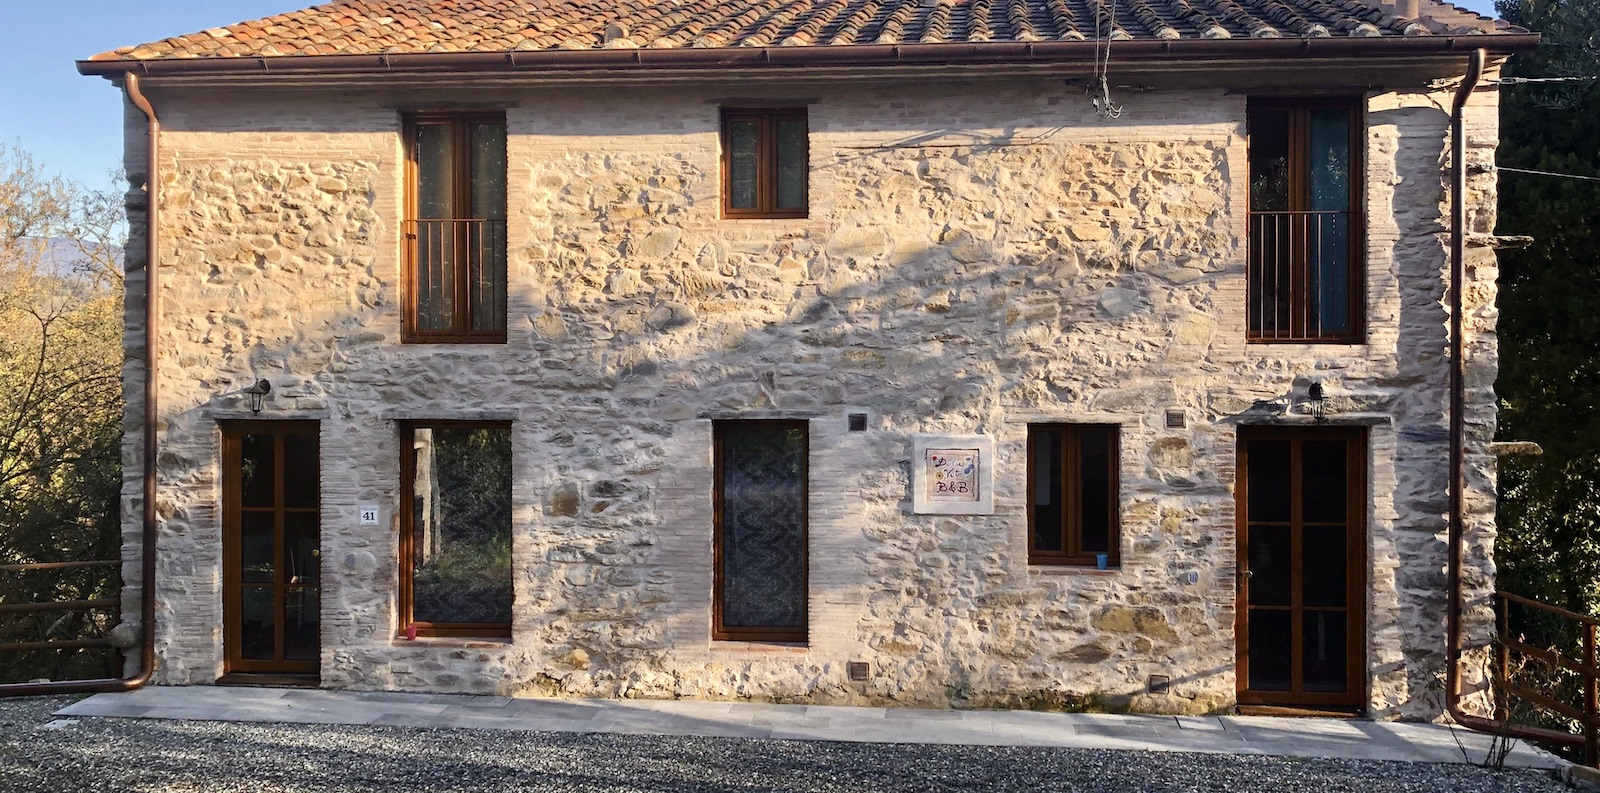 OUR STONE HOUSE NEAR LUCCA